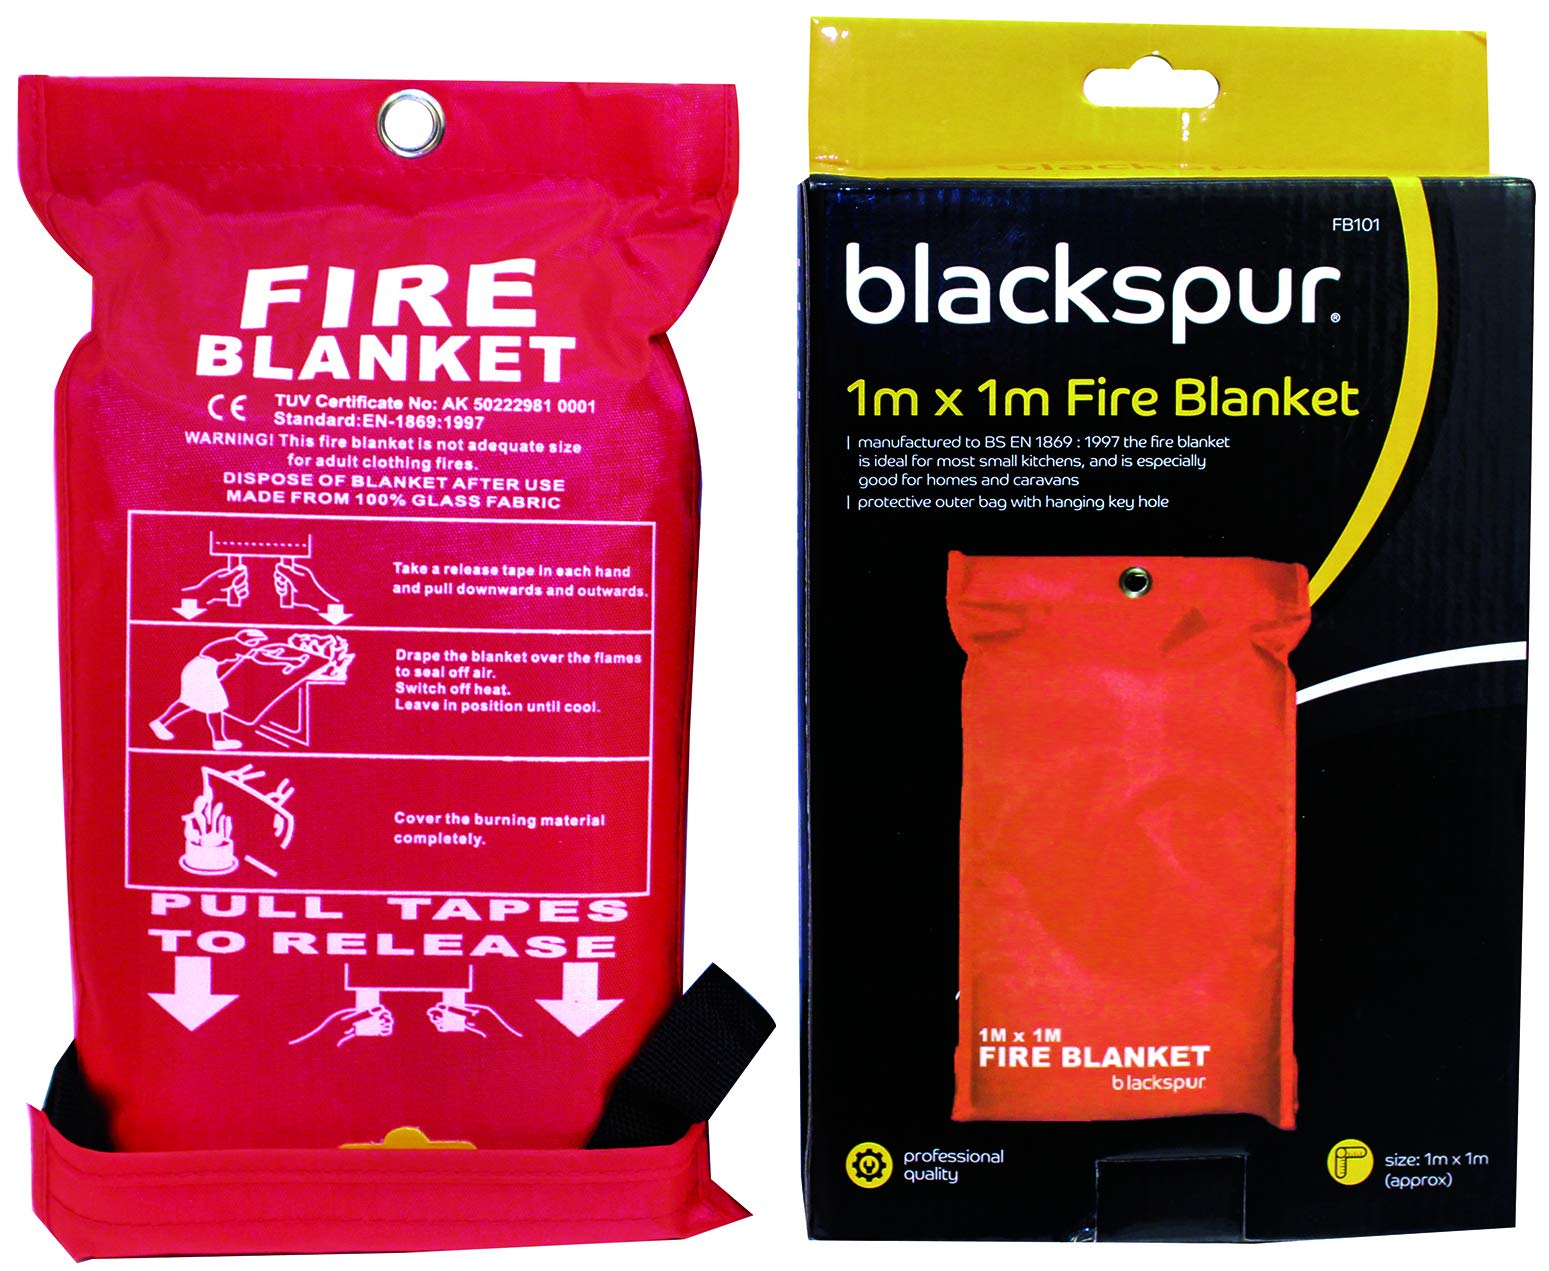 Blackspur BB-FB101 Fire Blanket